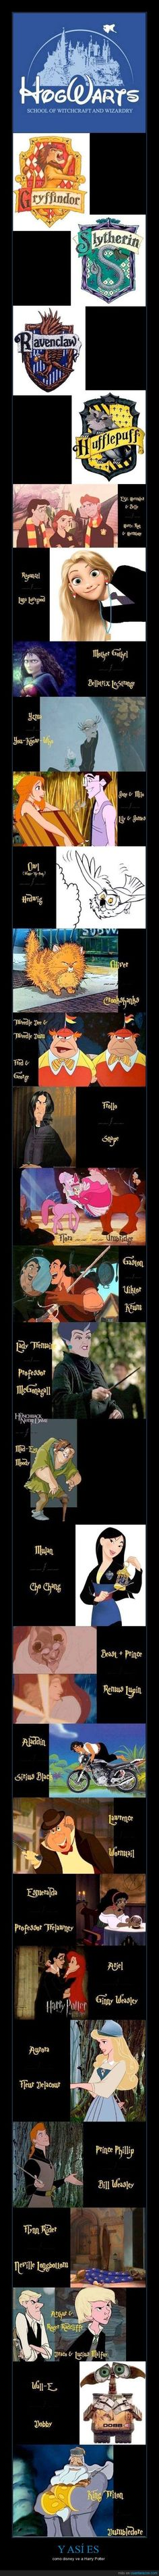 Y ASÍ ES - como disney ve a Harry Potter